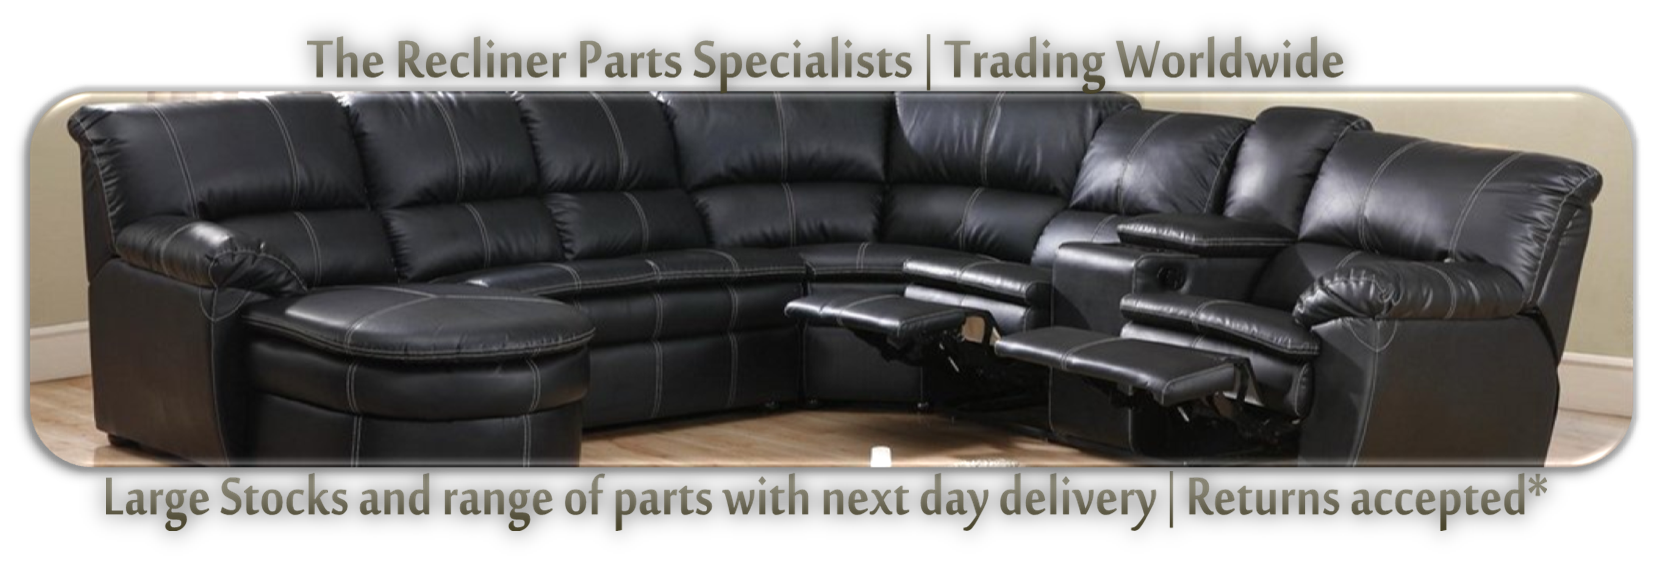 Recliner Replacement parts and nationwide furniture repairs ...